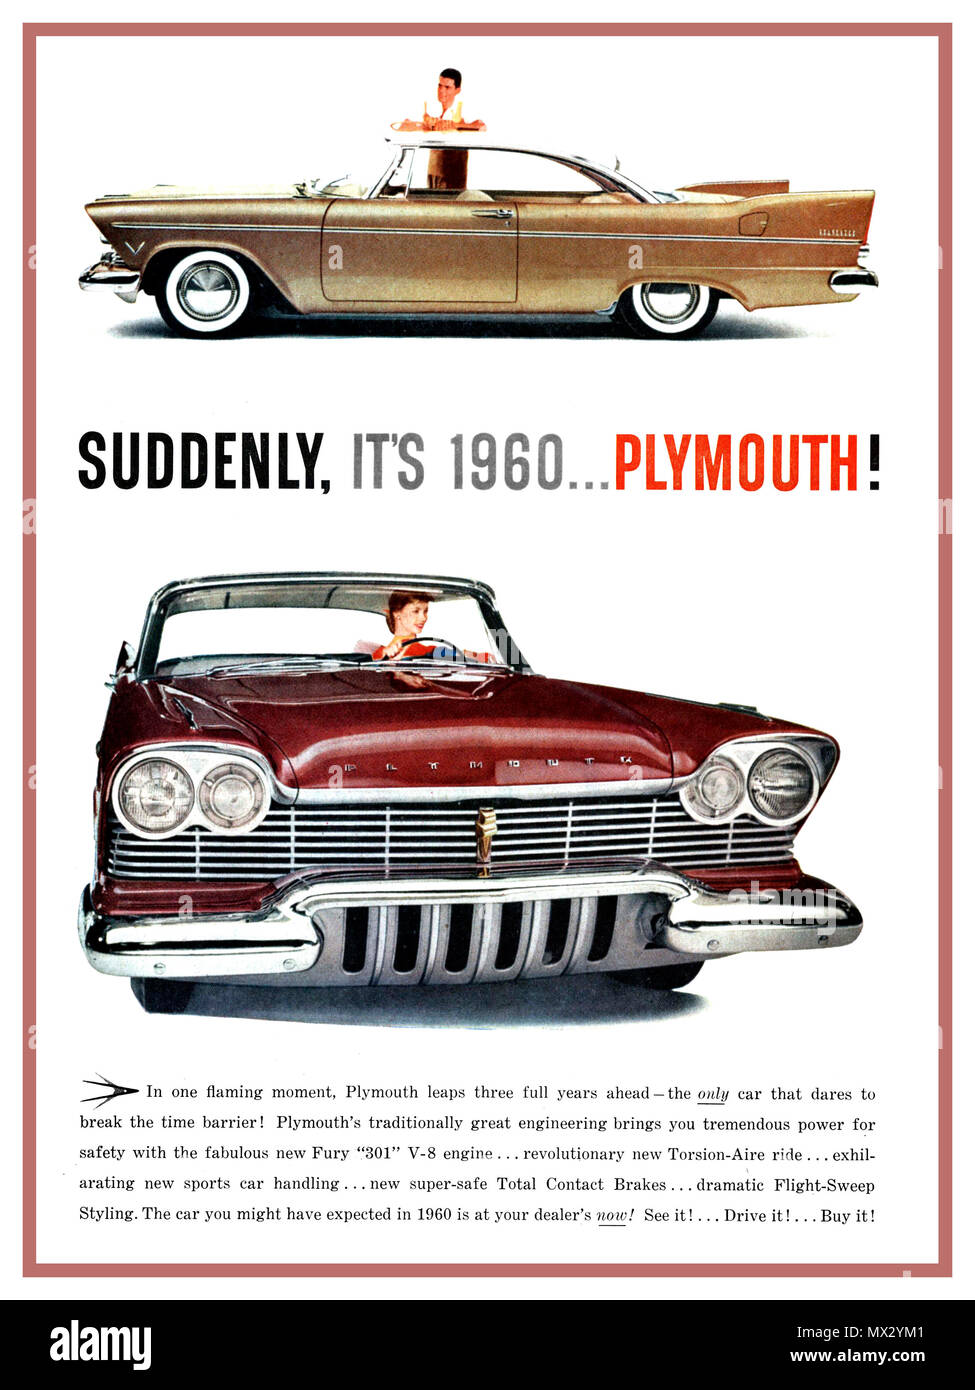 1960 Plymouth Fury Police Car Stock Photos Images Alamy Automobile Motorcar Vintage American Magazine Press Advertisement Suddenly Its